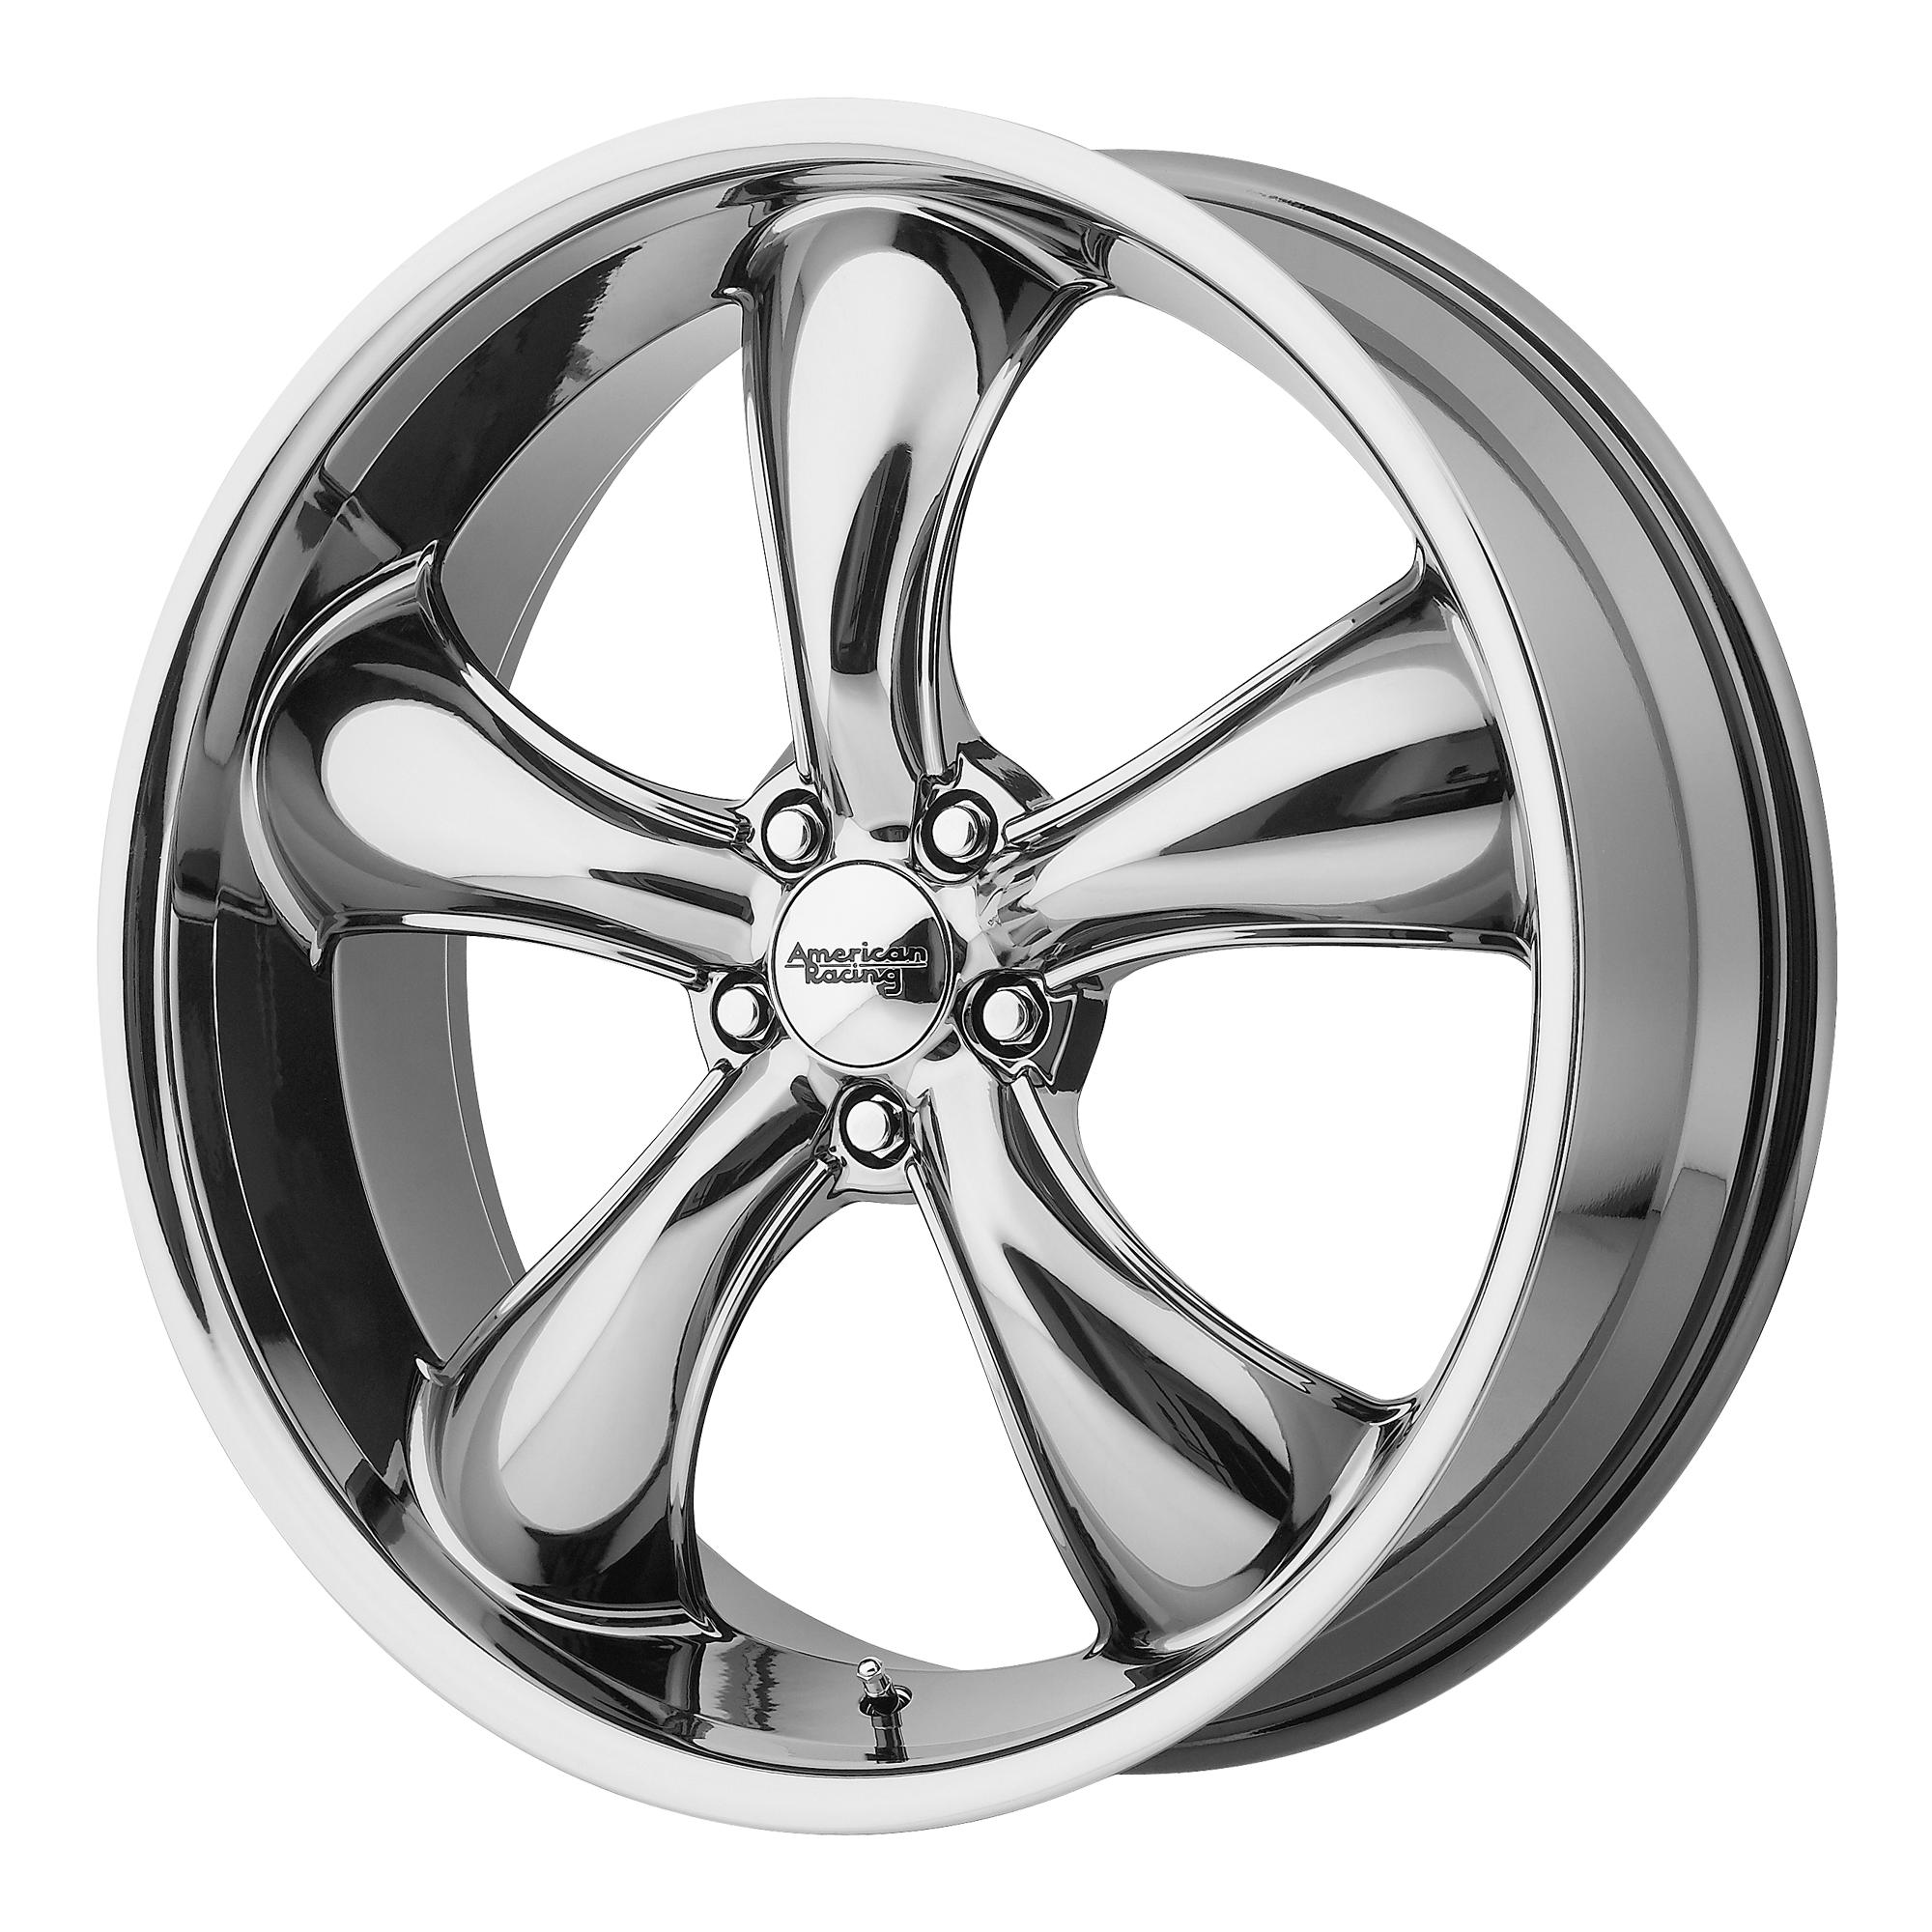 American Racing Wheels AR912 TT60 Chrome